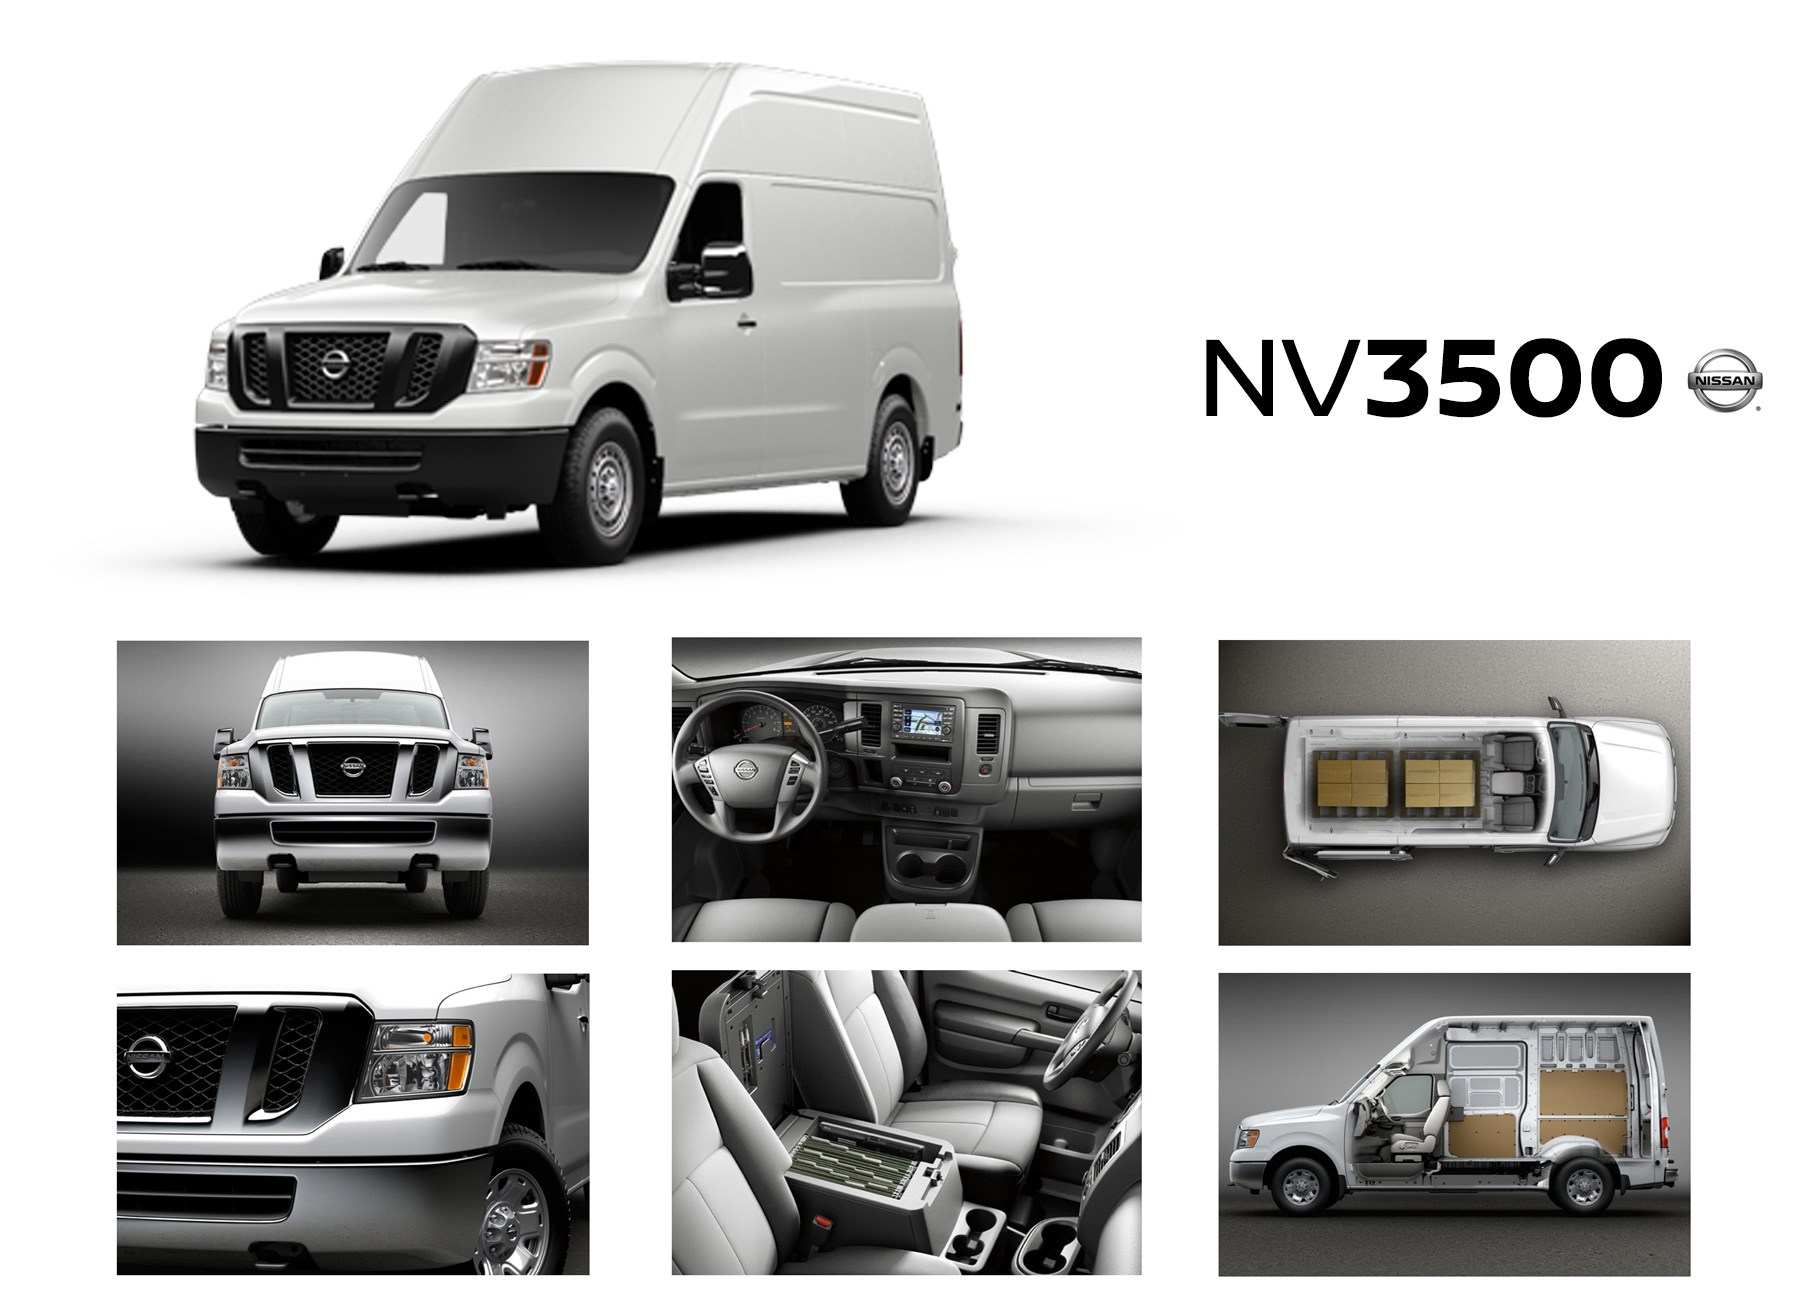 New Nissan Nv3500 Nissan Commercial Vehicles In Madison Co Al